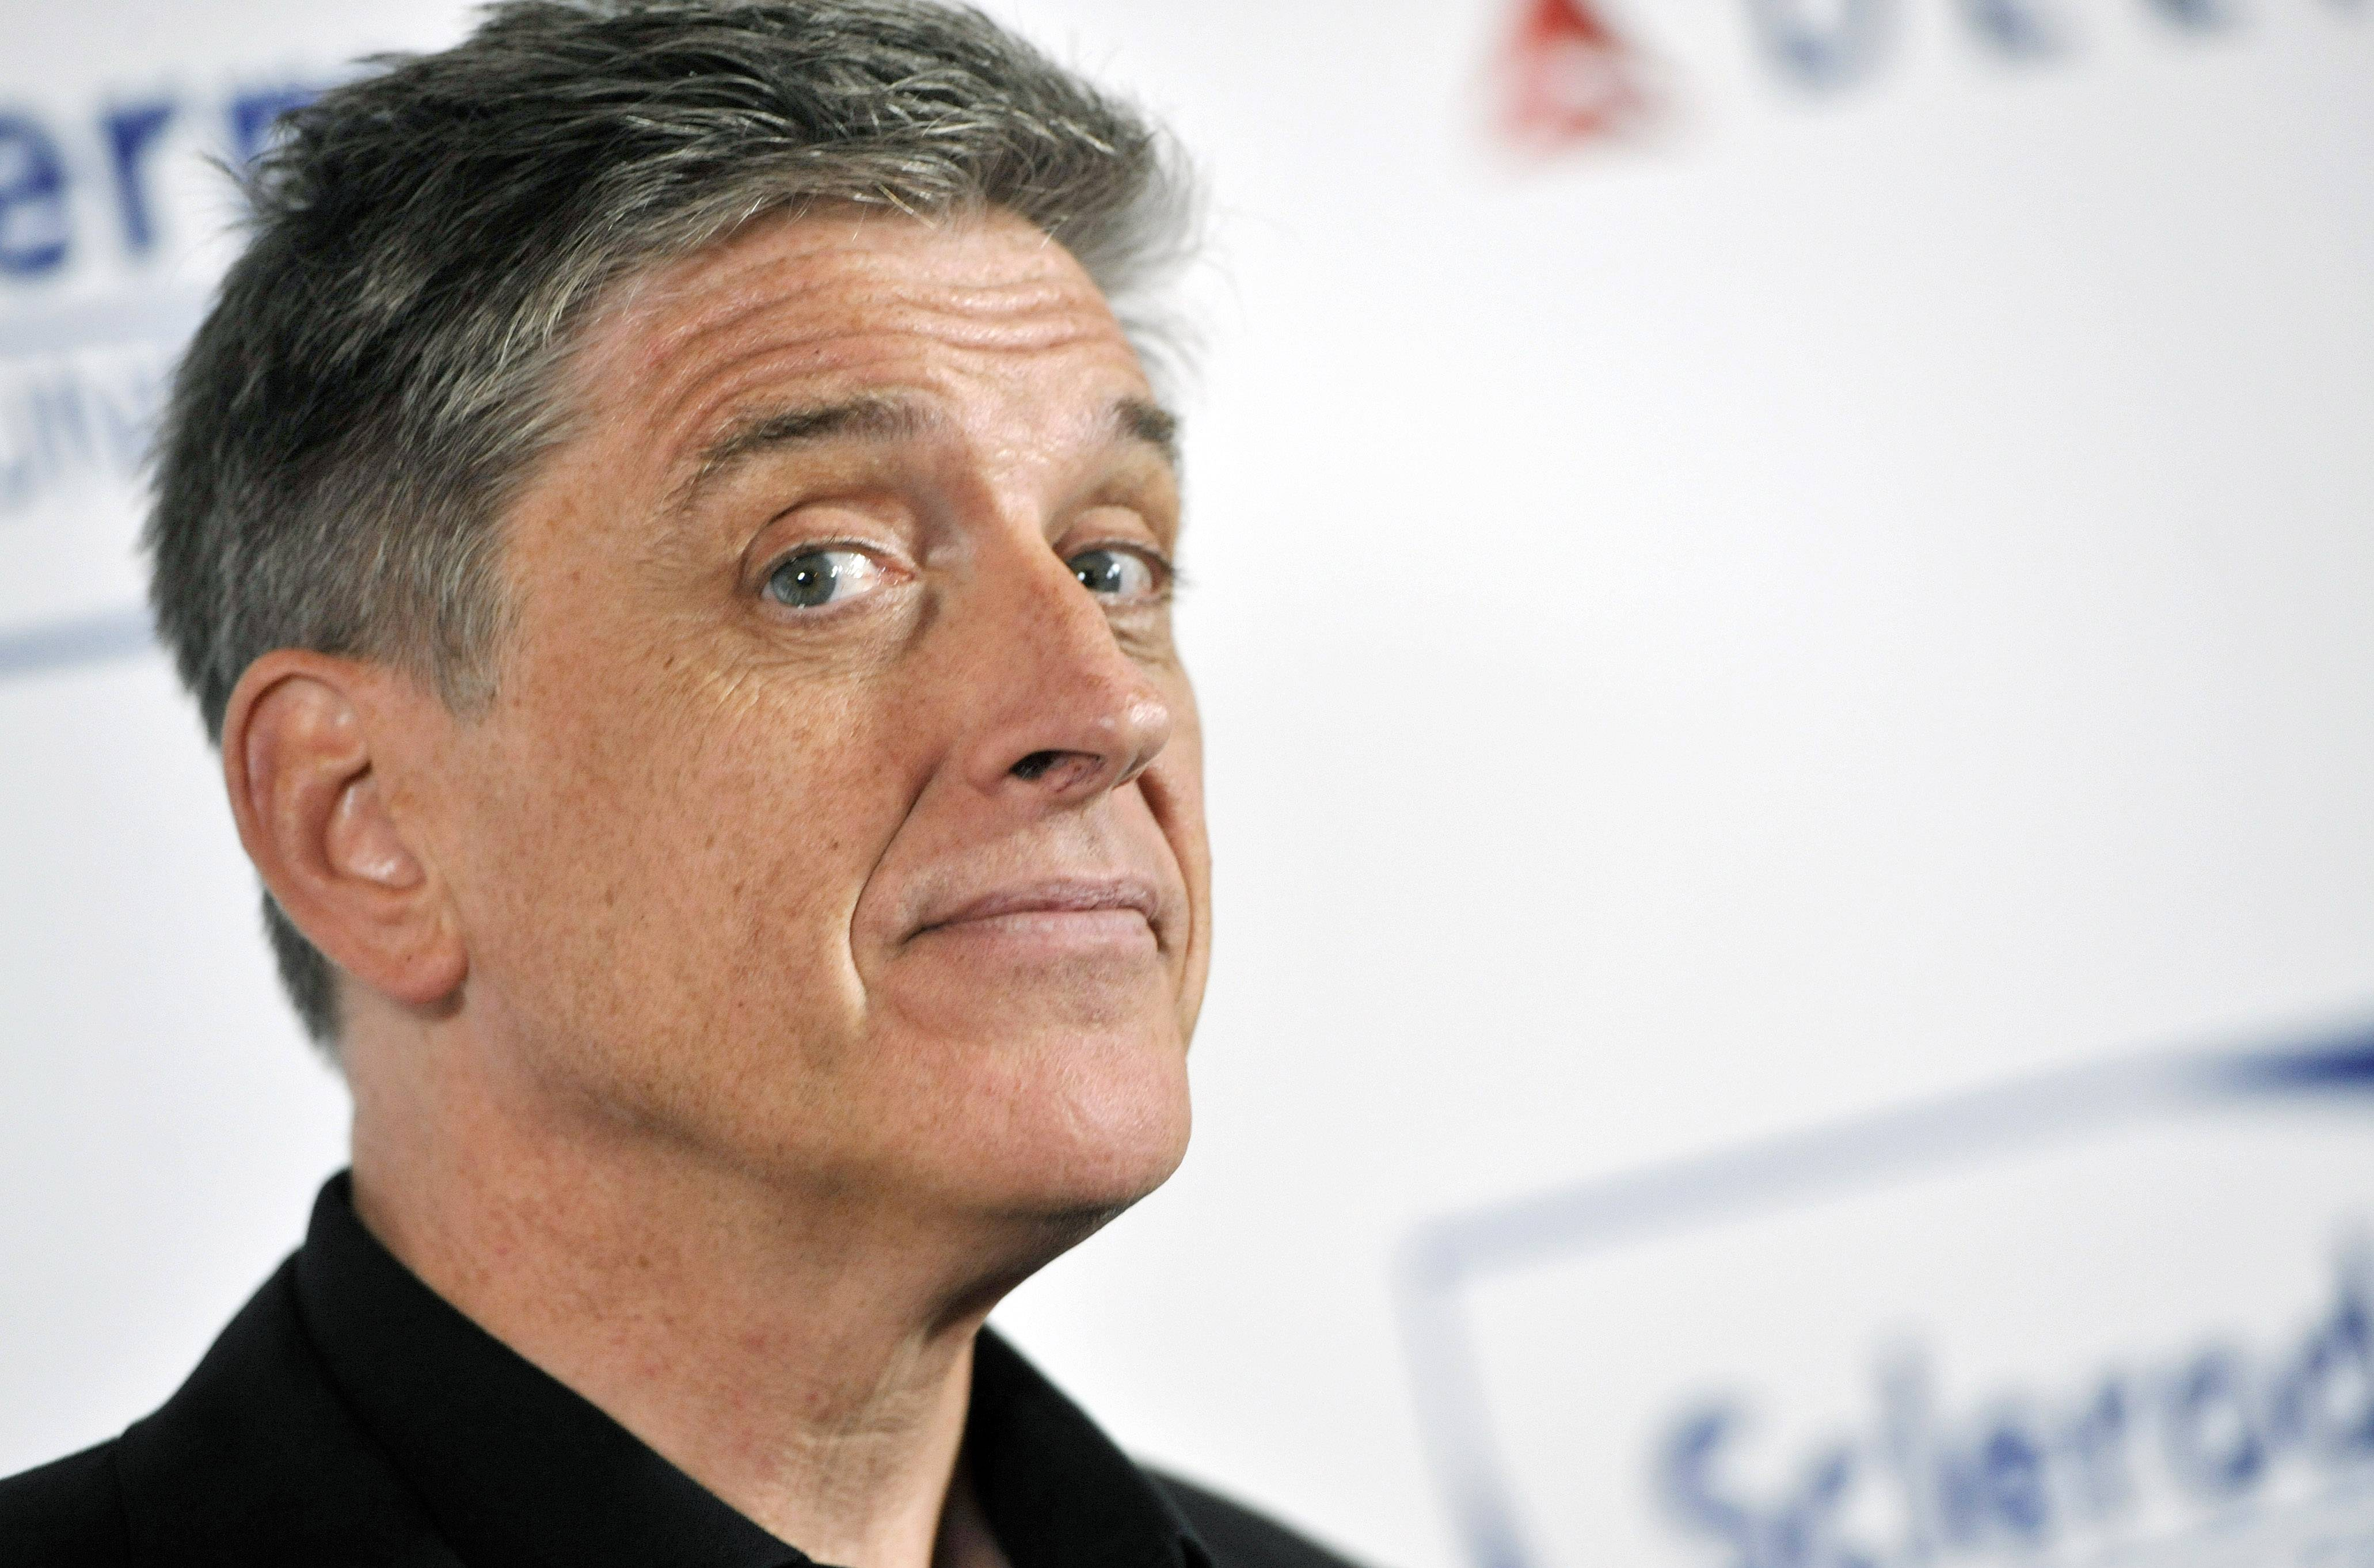 Comedian Craig Ferguson is close to a deal to launch an early-evening talk show starting in fall 2015.